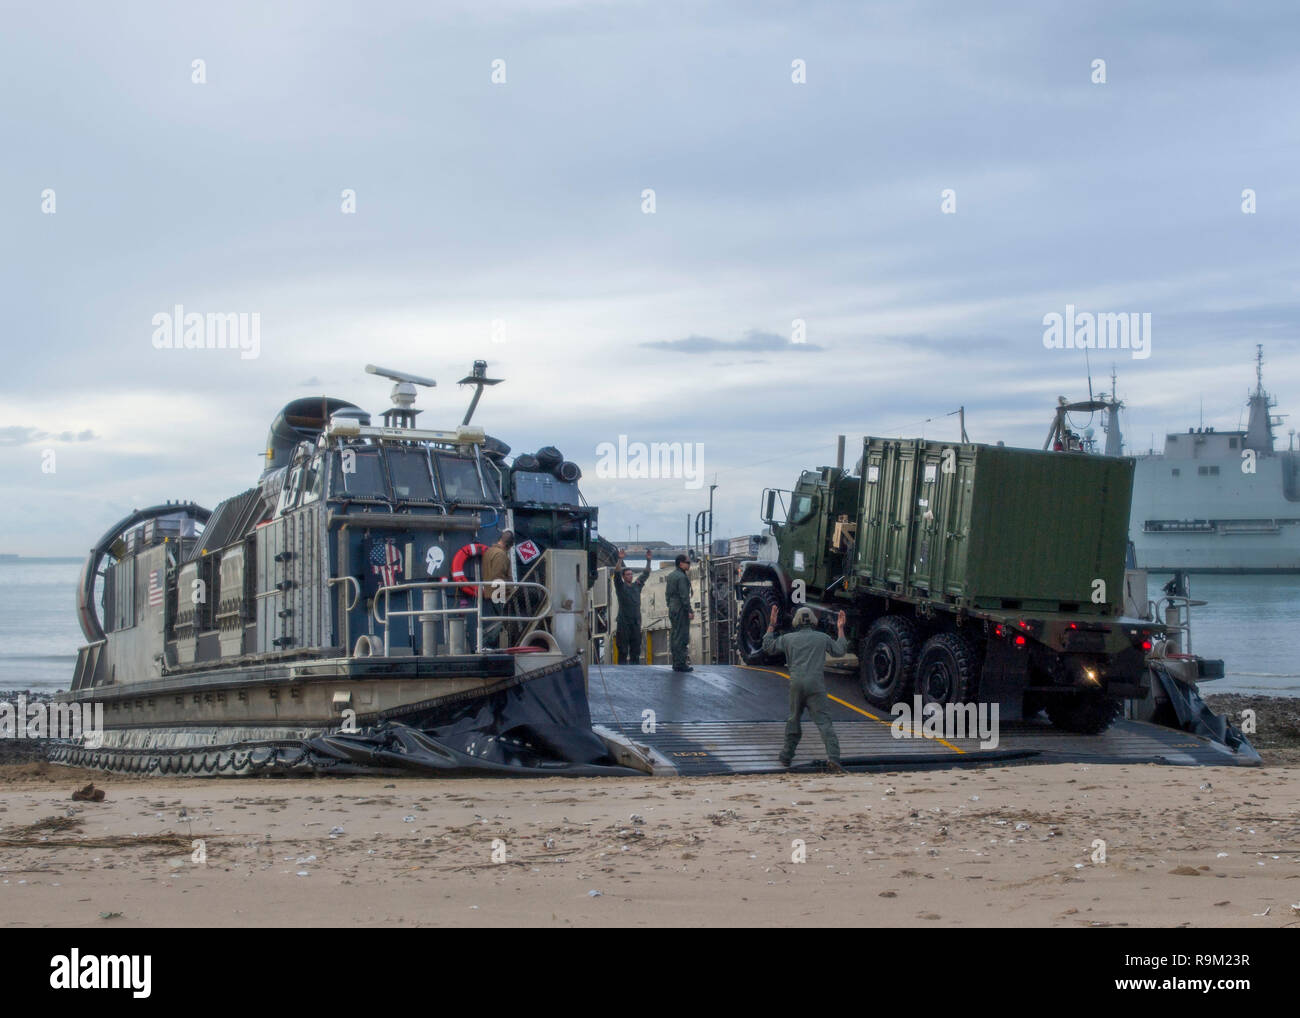 181124-N-PH222-1392 ROTA, SPAIN (Nov. 24, 2018) Sailors assigned to Assault Craft Unit 5, embarked on the San Antonio-class amphibious transport dock ship USS Anchorage (LPD 23), offload vehicles from a landing craft, air cushion (LCAC) in Rota, Spain, Nov. 24, 2018. Anchorage and embarked 13th Marine Expeditionary Unit are deployed to the U.S. 6th Fleet area of operations as a crisis response force in support of regional partners as well as to promote U.S. national security interests in Europe and Africa. (U.S. Navy photo by Mass Communication Specialist 3rd Class Ryan M. Breeden/Released) - Stock Image